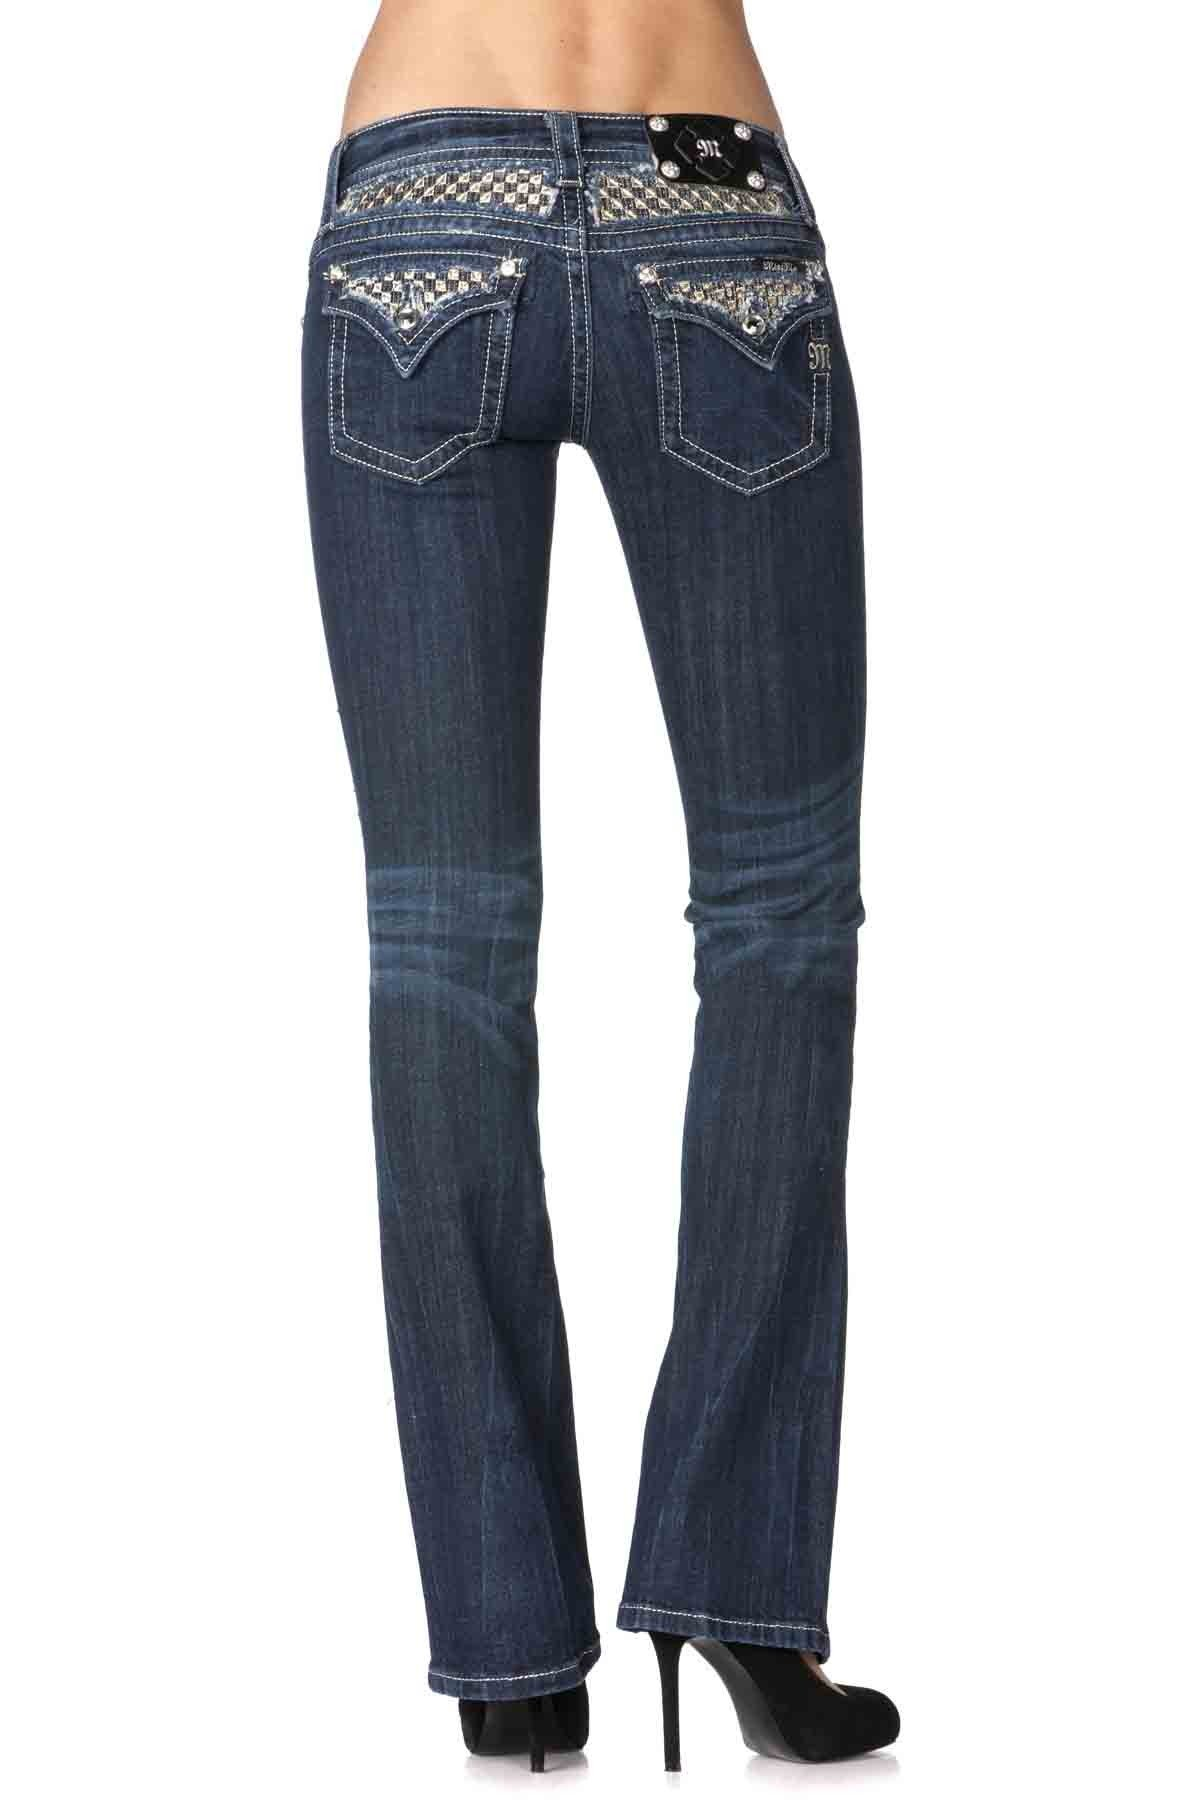 Miss Me Bootcut Jean with Chess Pattern Insert, Dark Blue, 29